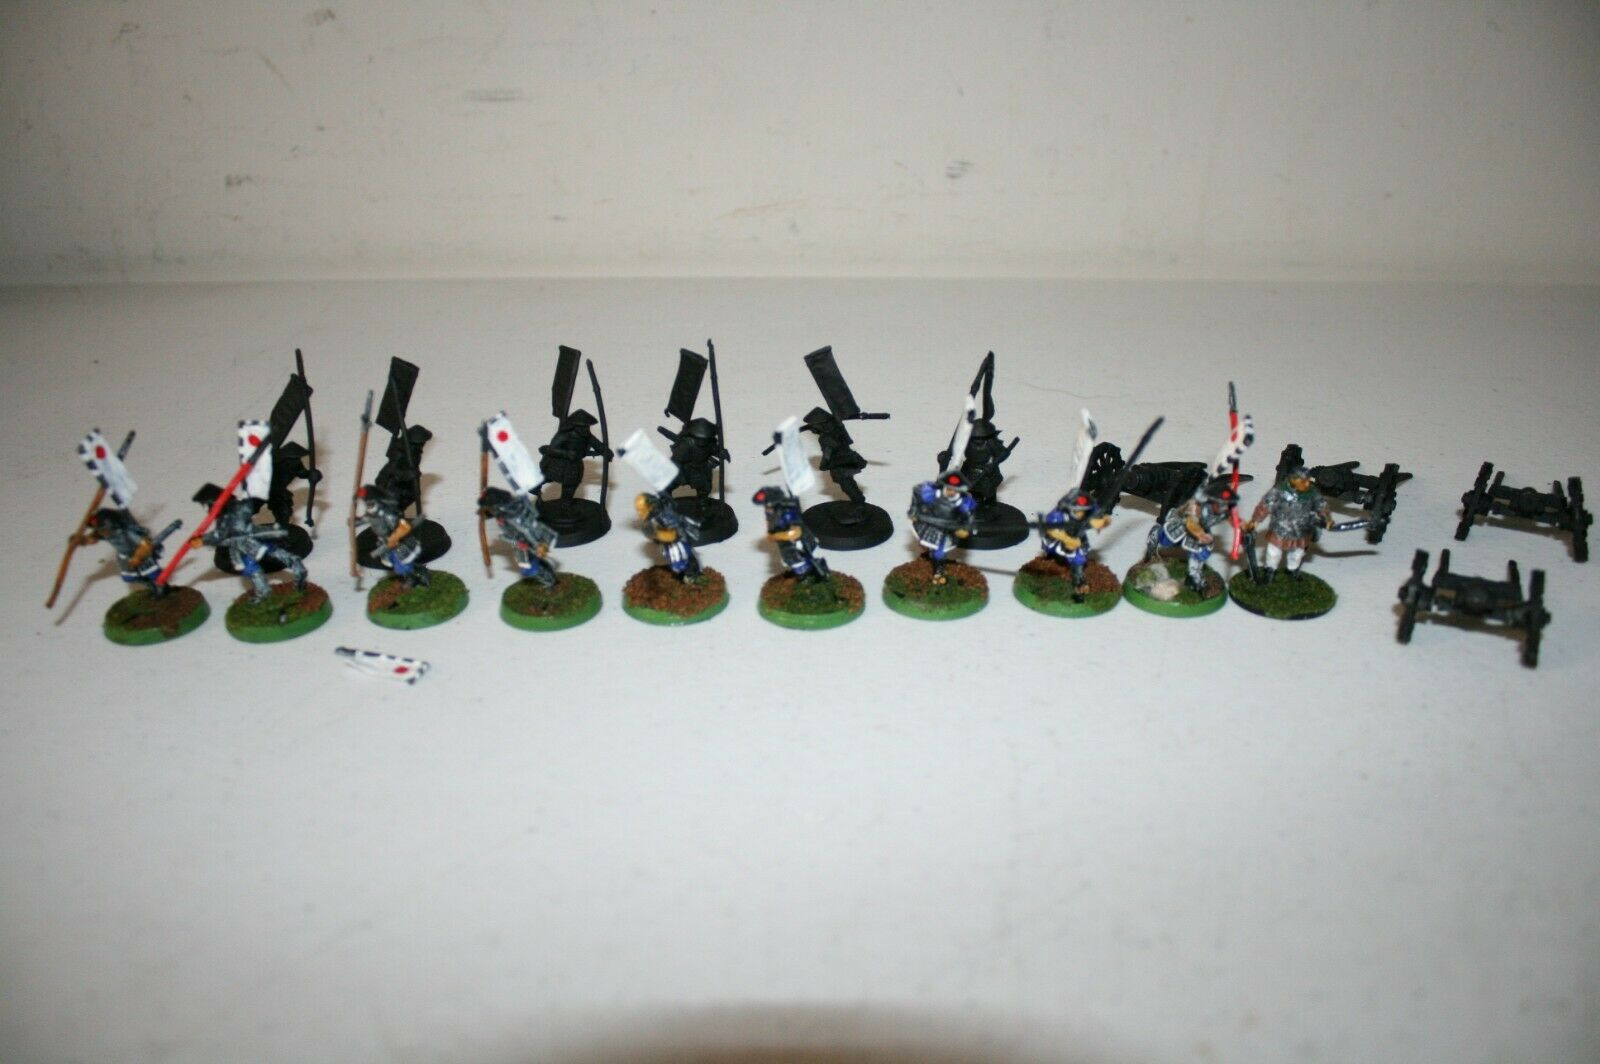 Lot of 20 Ral Partha Historical Miniature Samurai Game Workshop Metal Painted